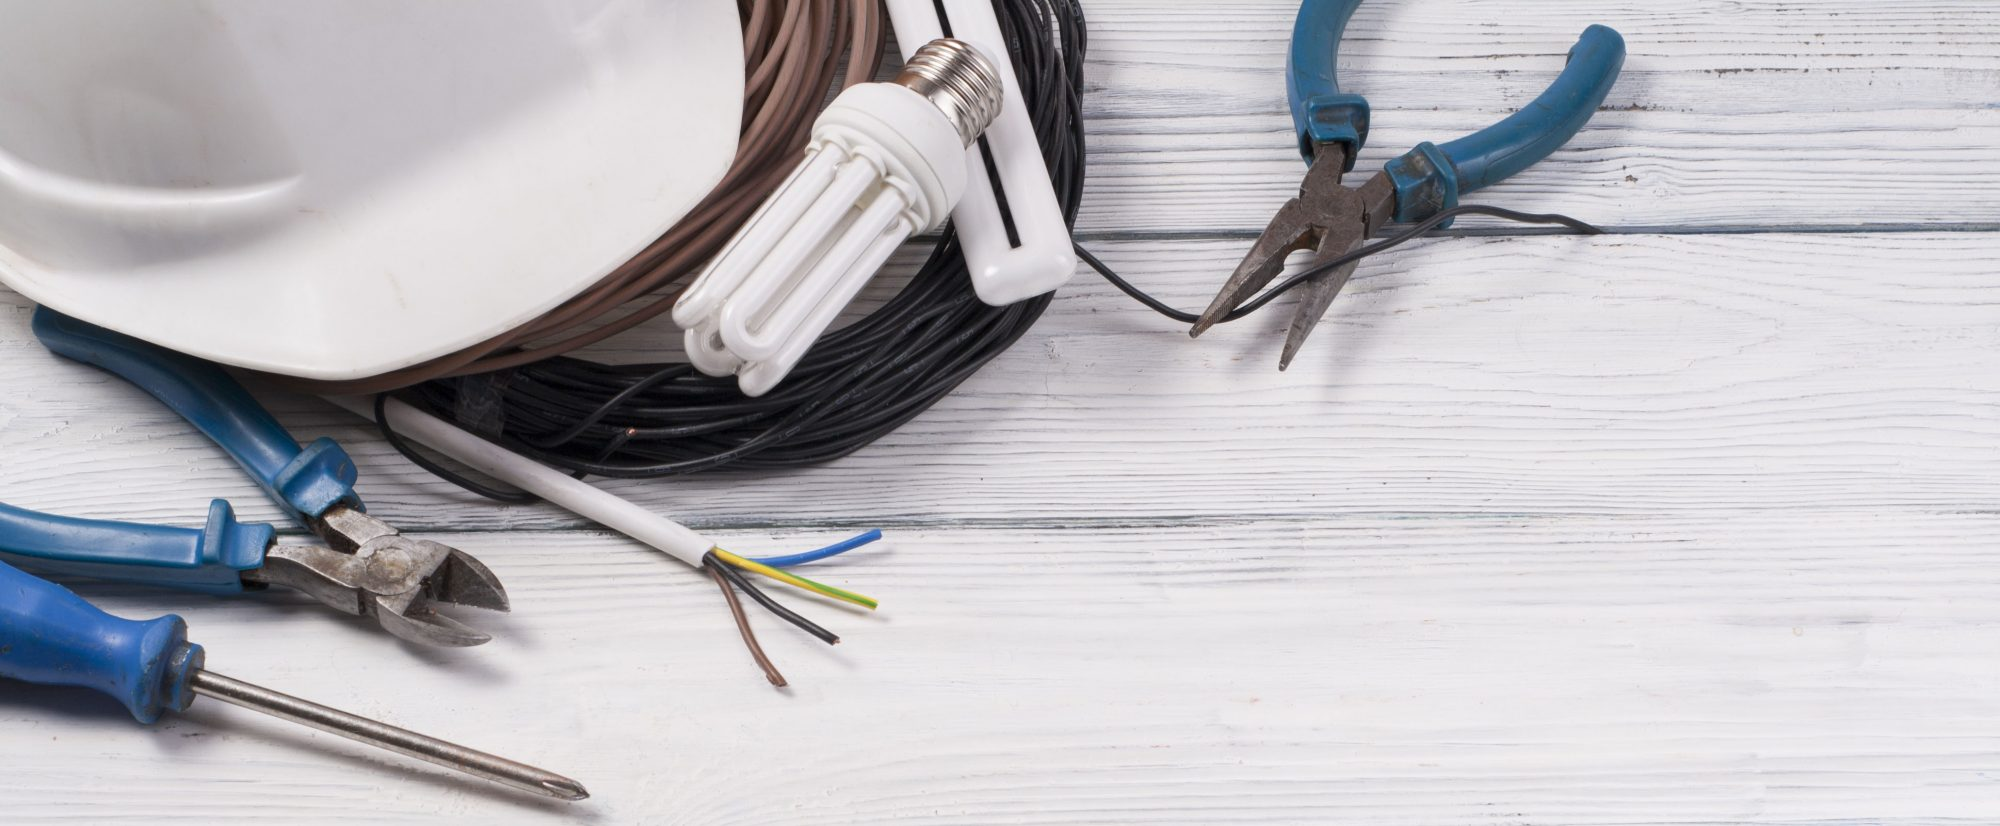 5 Signs You Need to Call an Electrician